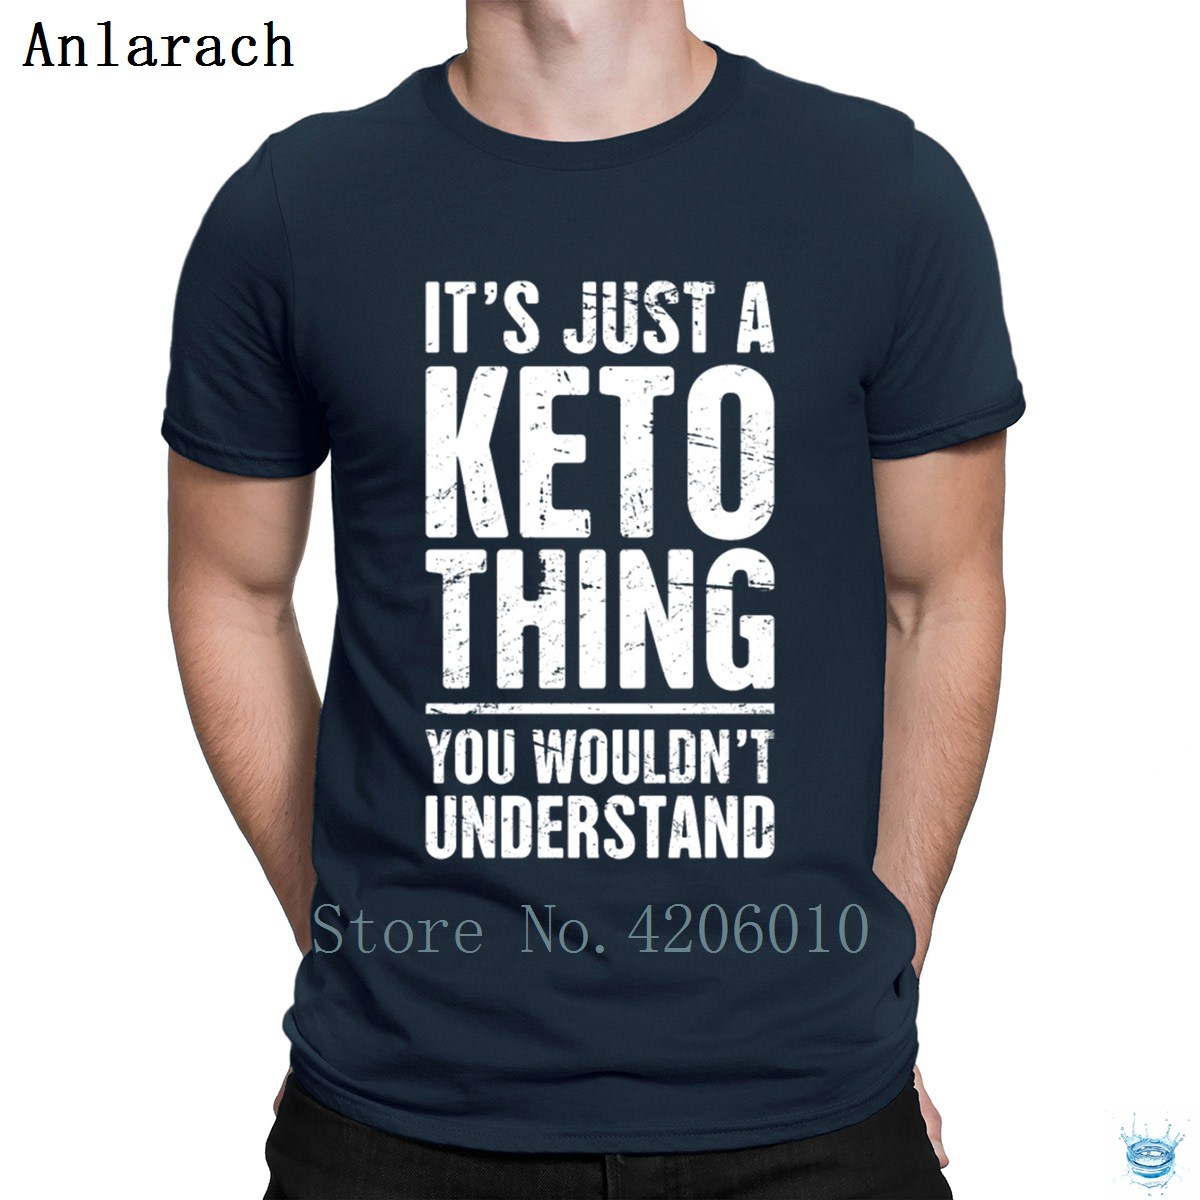 It's Just A Keto Thing Tshirt Basic Customize High Quality Fitted Men's Tshirt Sunlight Letters Plus Size 3xl Tee Top